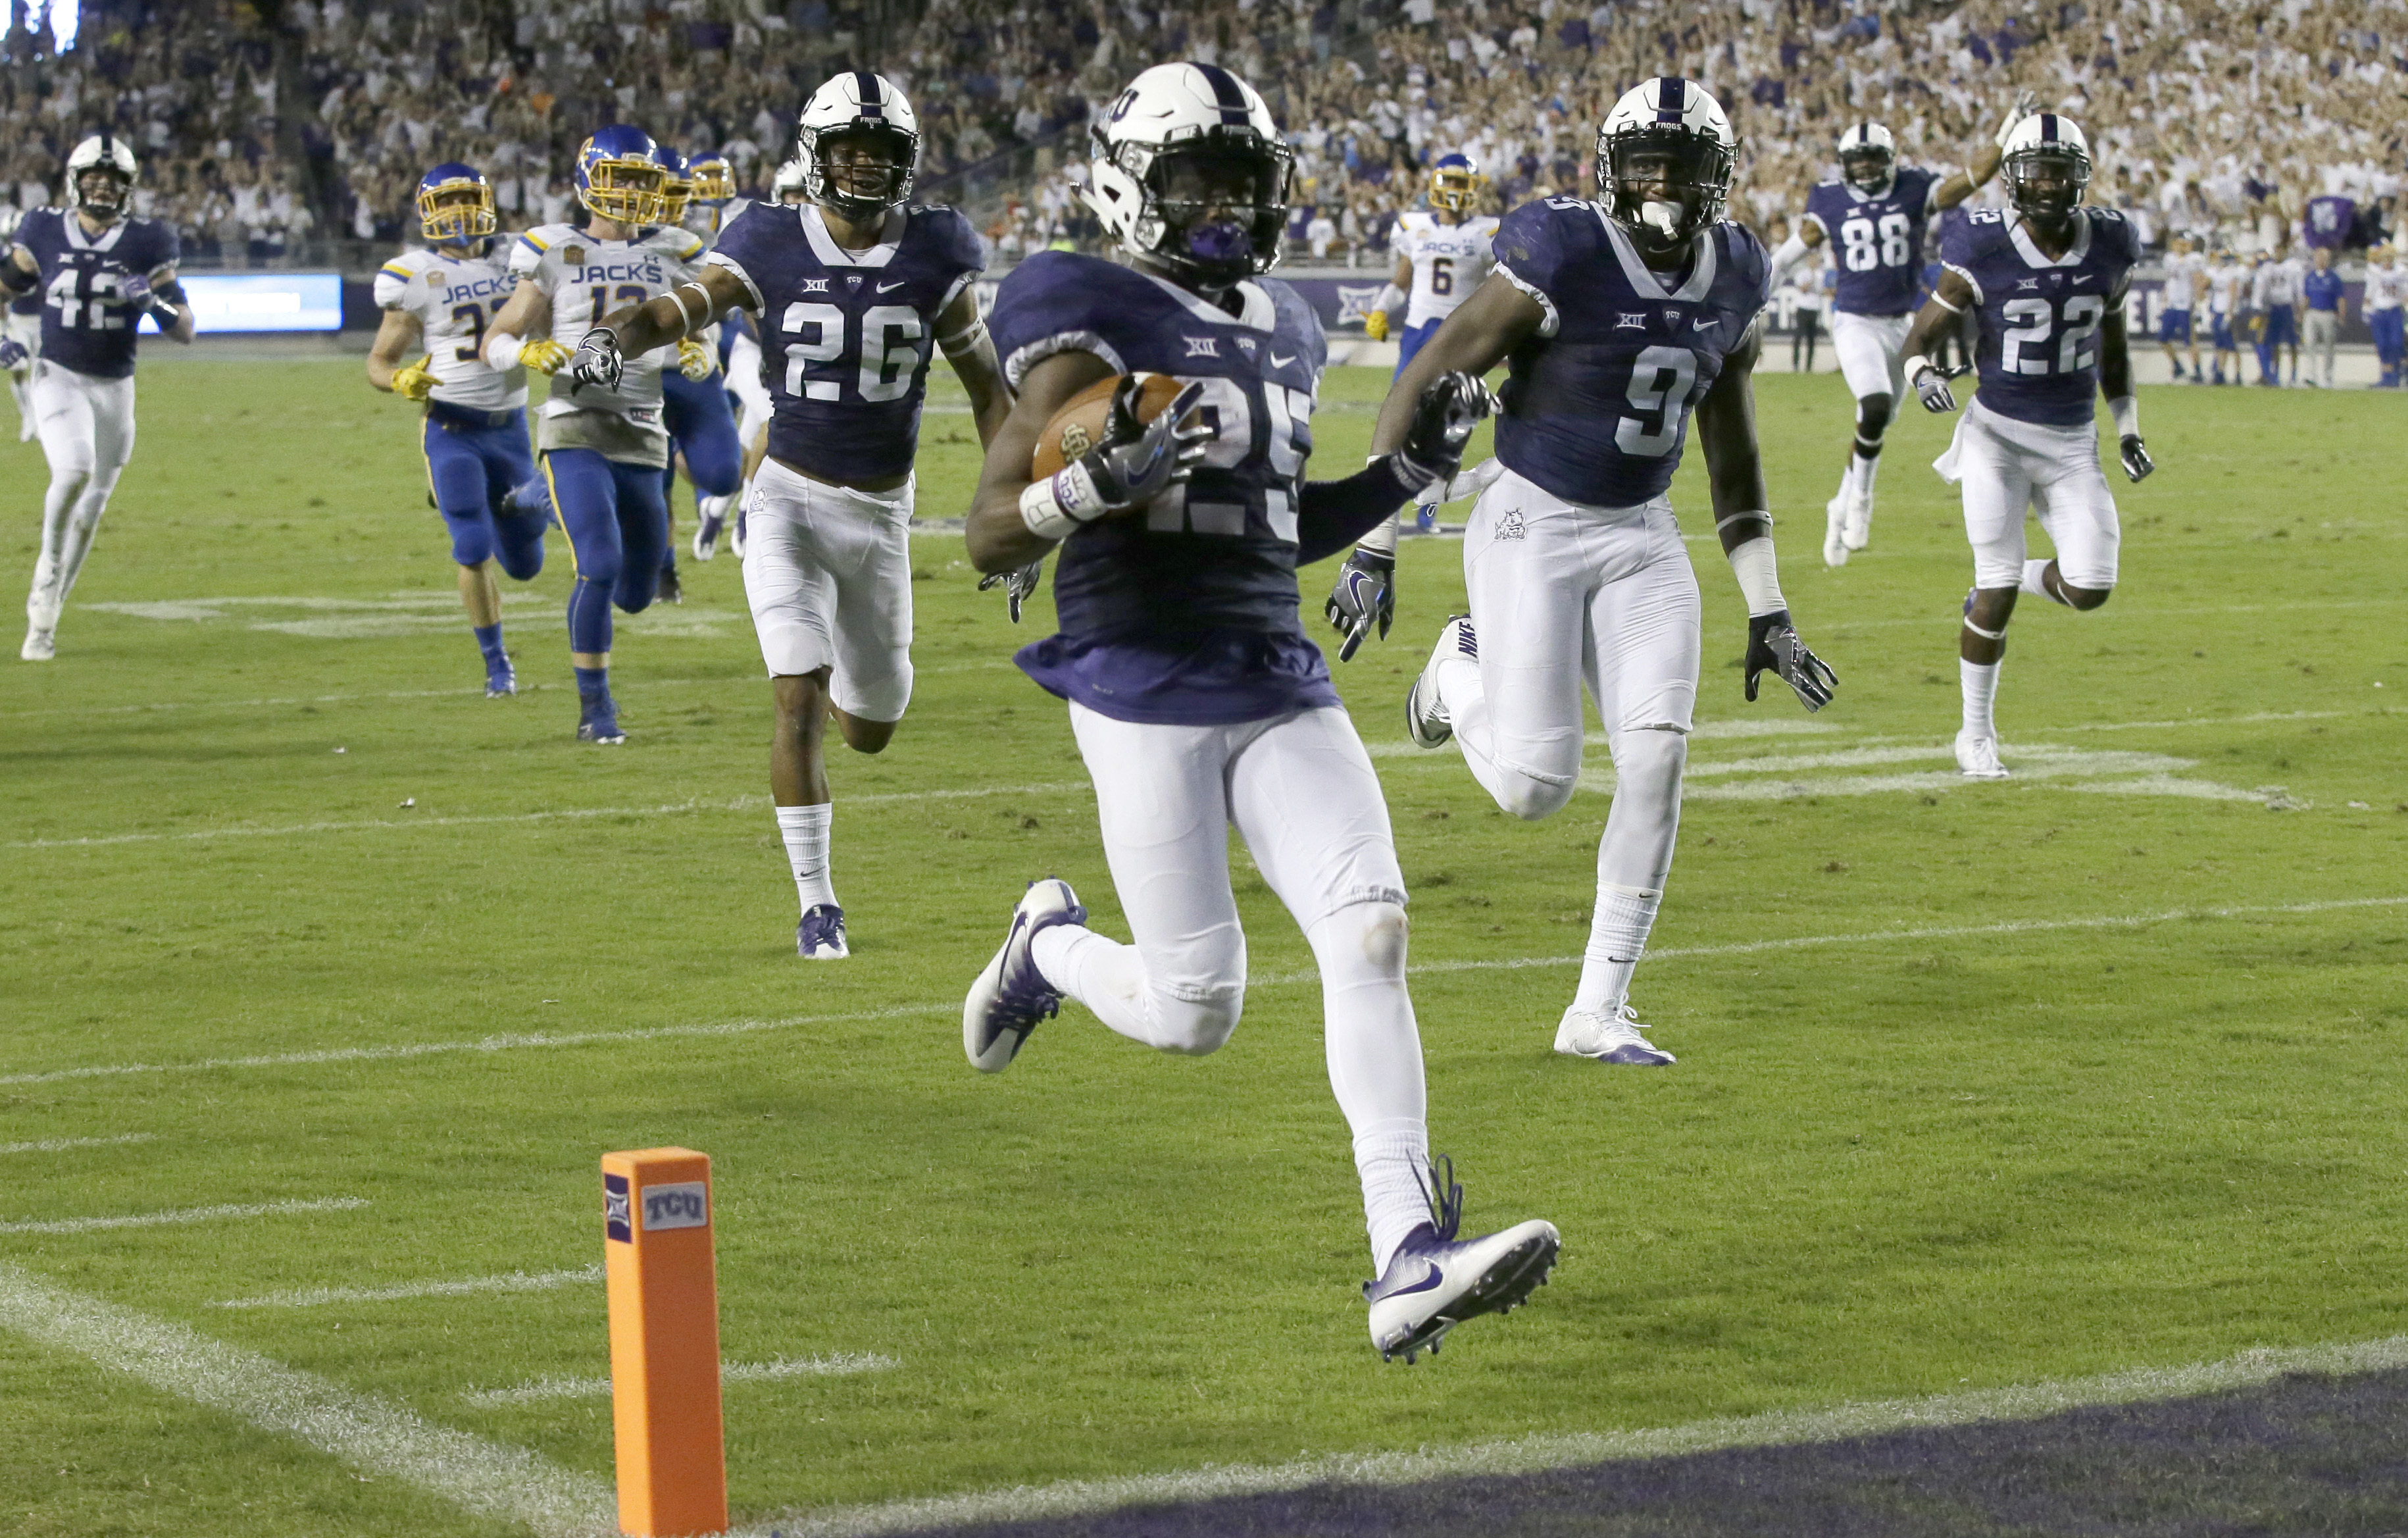 TCU punt returner KaVontae Turpin (25) runs a punt in for a touchdown during the first half of an NCAA college football game against South Dakota State on Saturday, Sept. 3, 2016, in Fort Worth, Texas. (AP Photo/LM Otero)